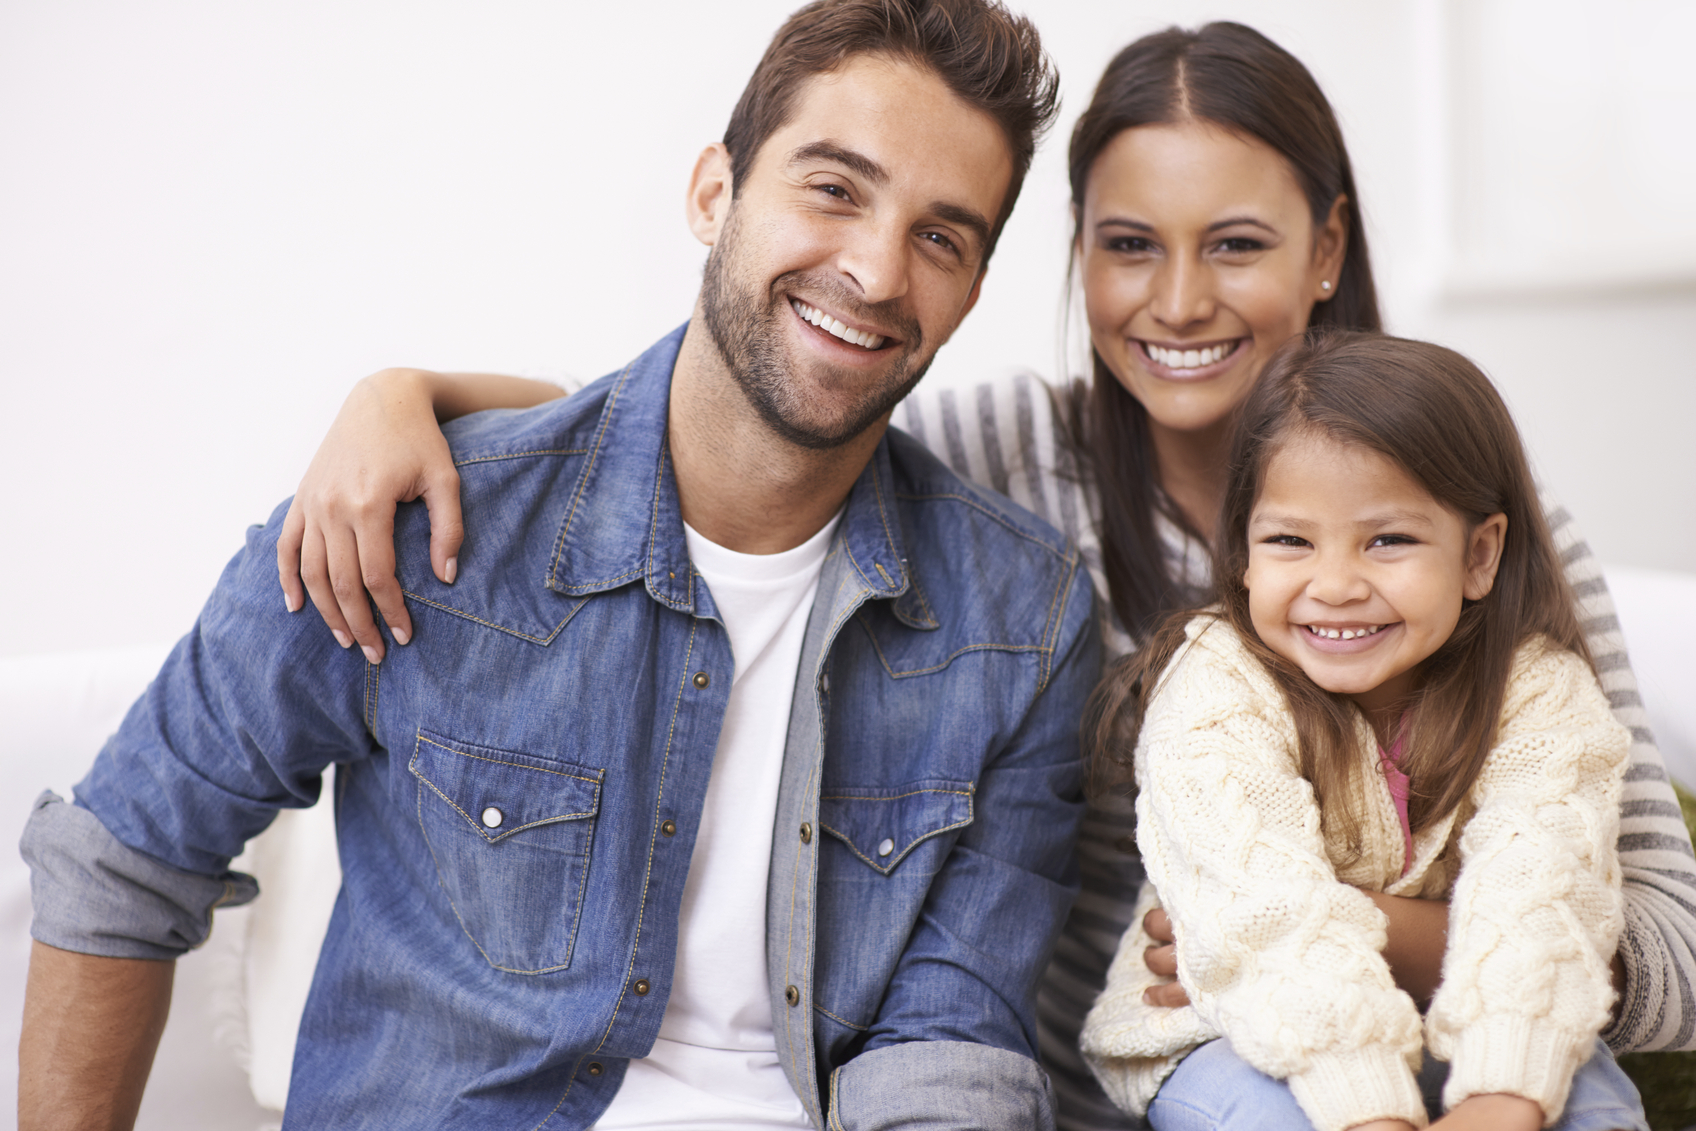 The nuclear family: the pros and cons 62